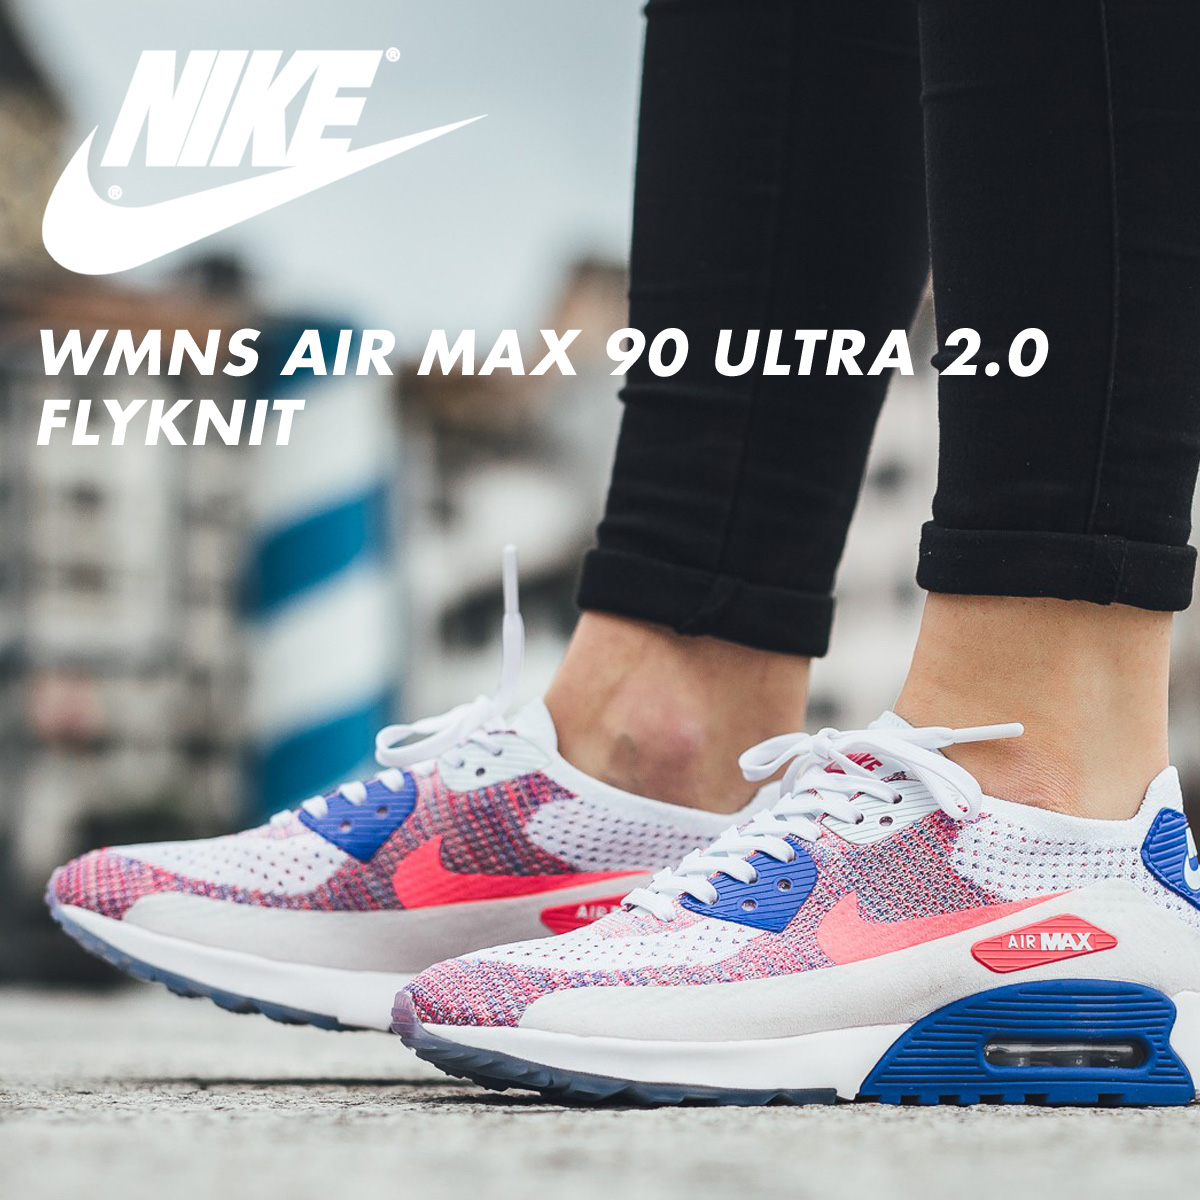 cd4019db ... Nike NIKE Air Max 90 ultra 2.0 fly knit Lady's sneakers WMNS AIR MAX 90  ULTRA ...